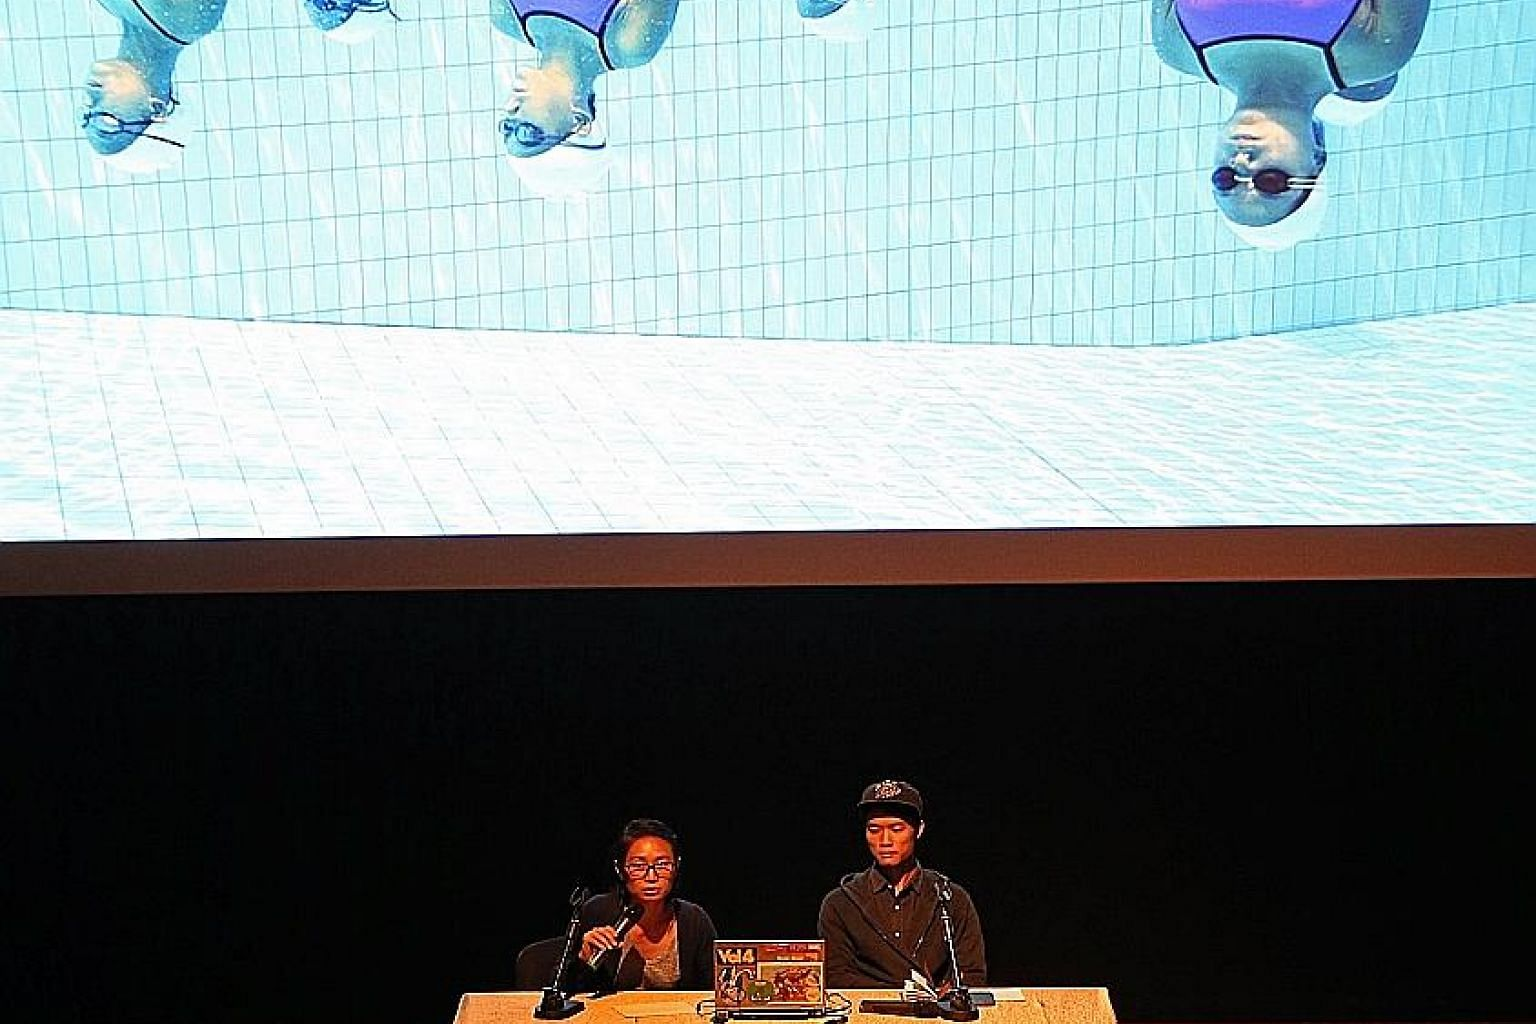 Straits Times photojournalist Caroline Chia, accompanied by colleague Mark Cheong, at yesterday's session at National Museum of Singapore, talking about a photo of a synchronised swimming team she had taken.